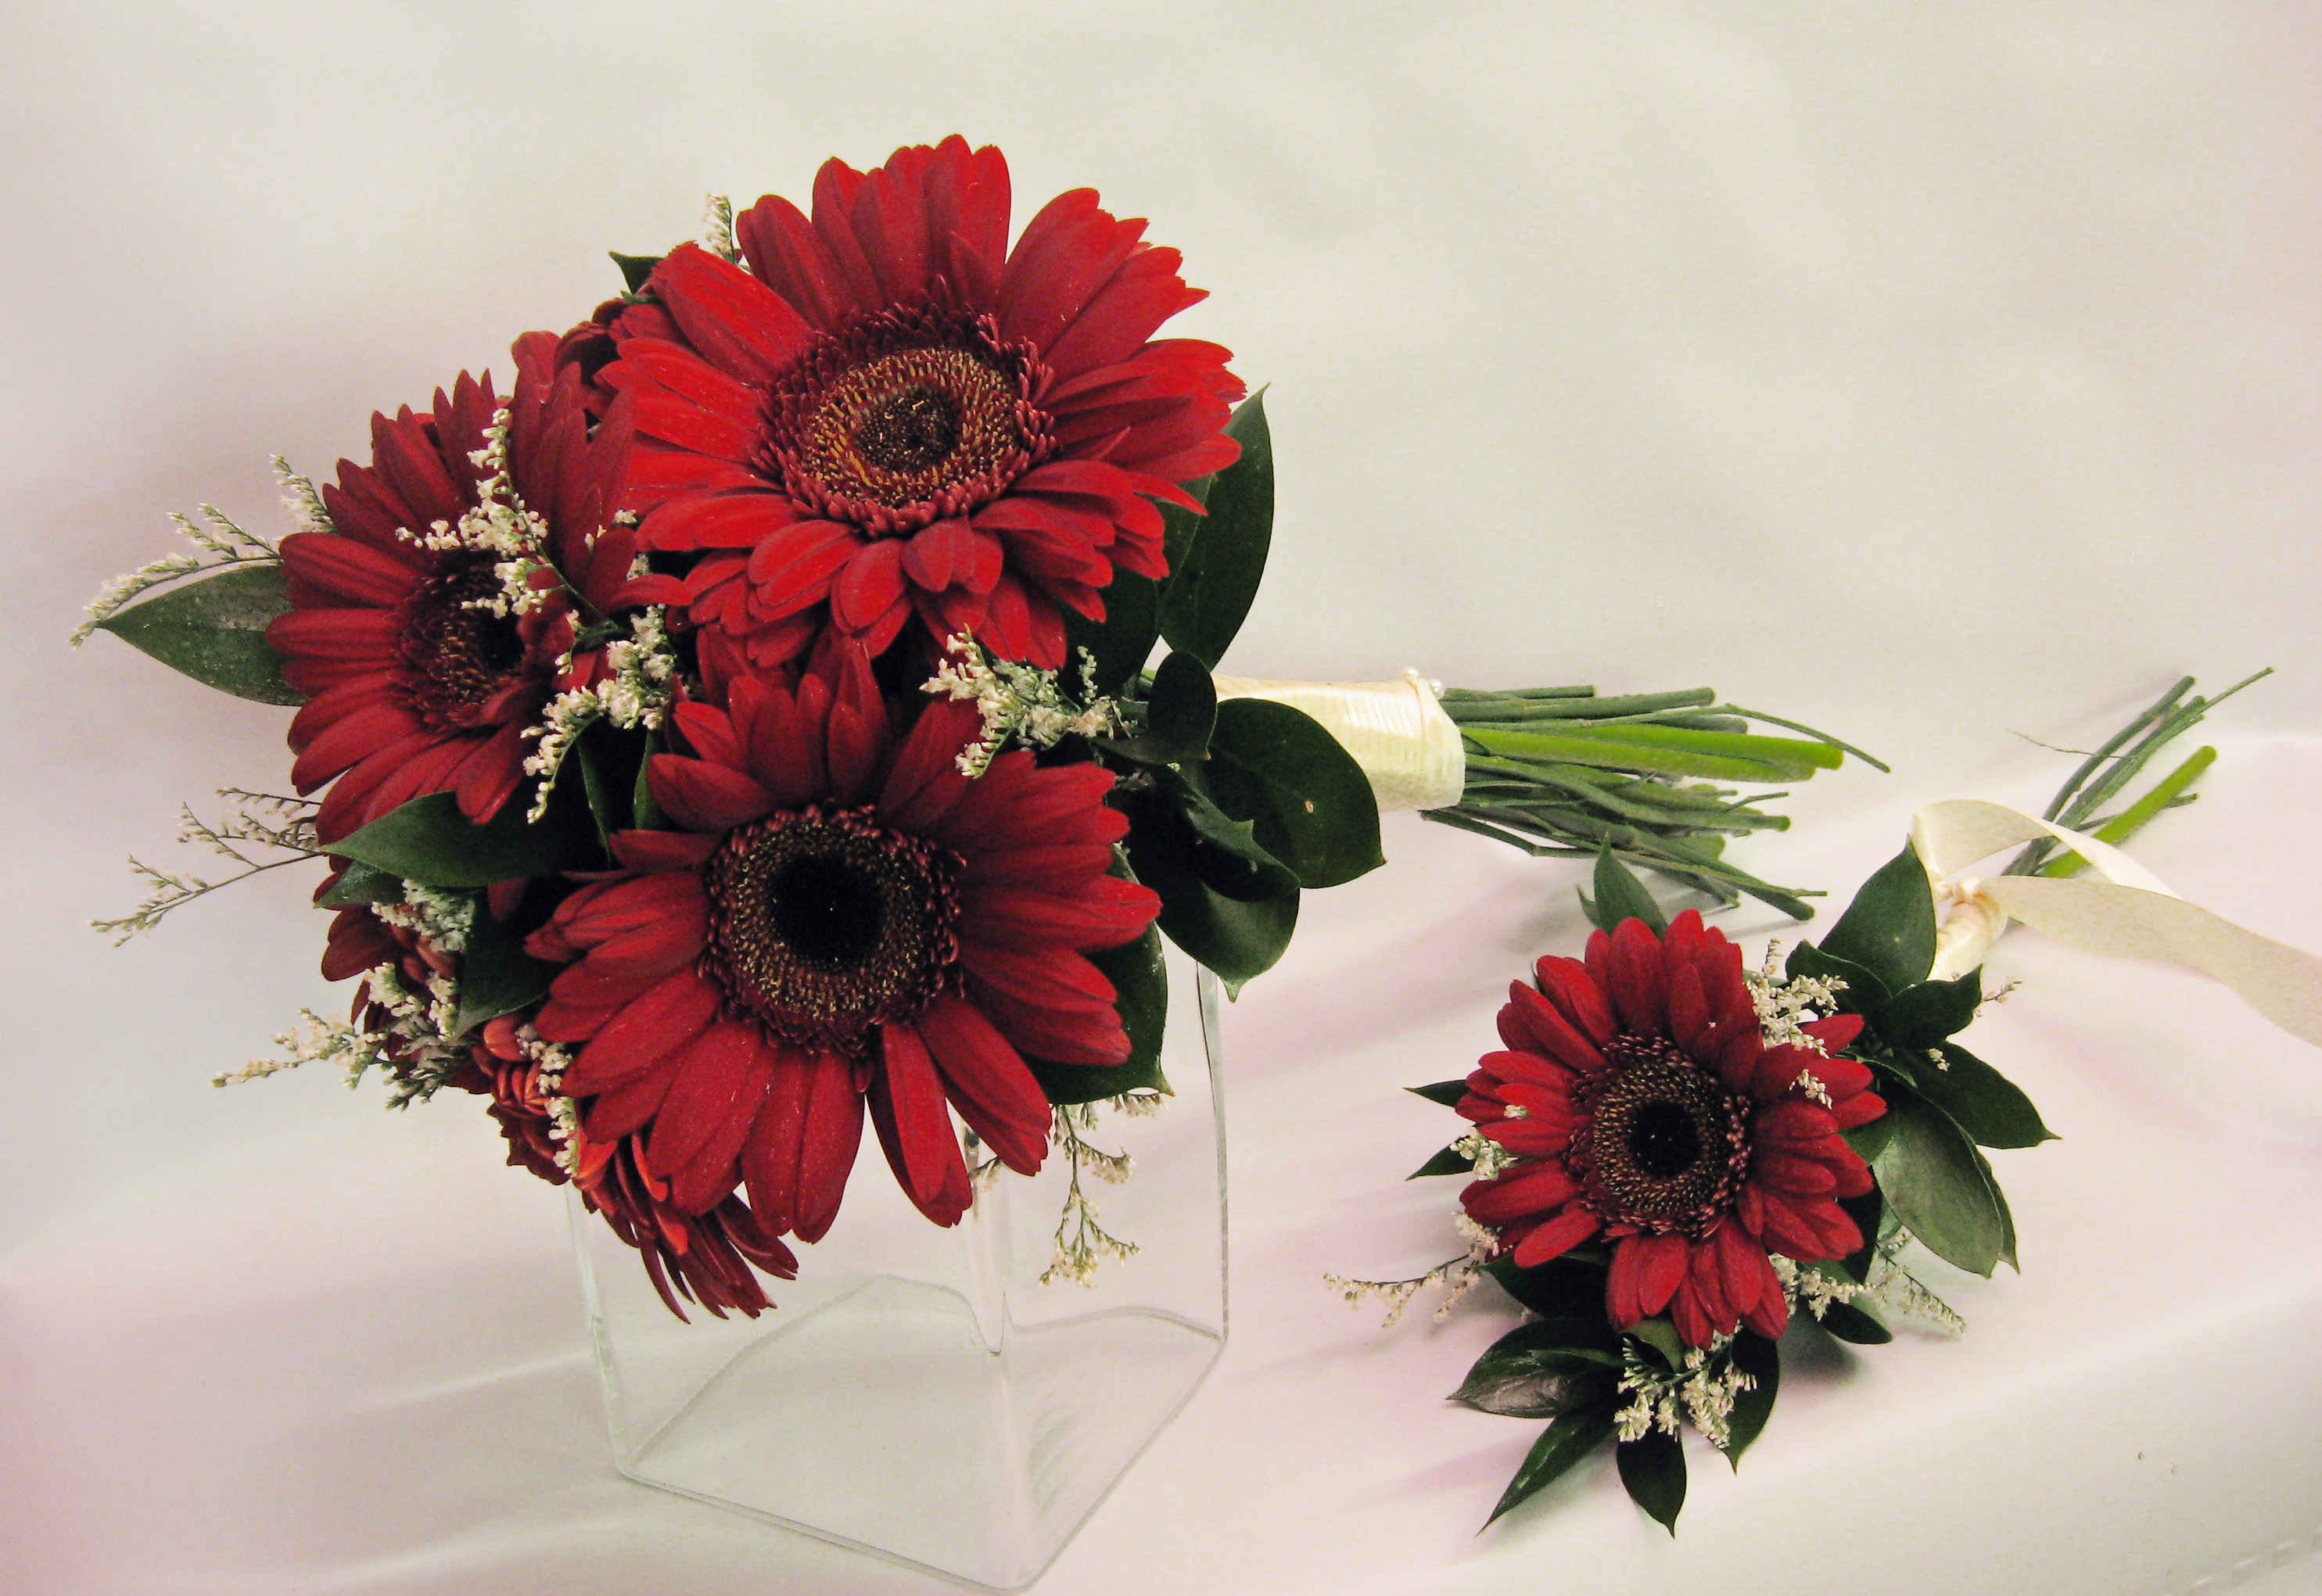 Wedding Bouquet Of Gerbera Daisies : Gerbera daisy bridal bouquet pizazz florals